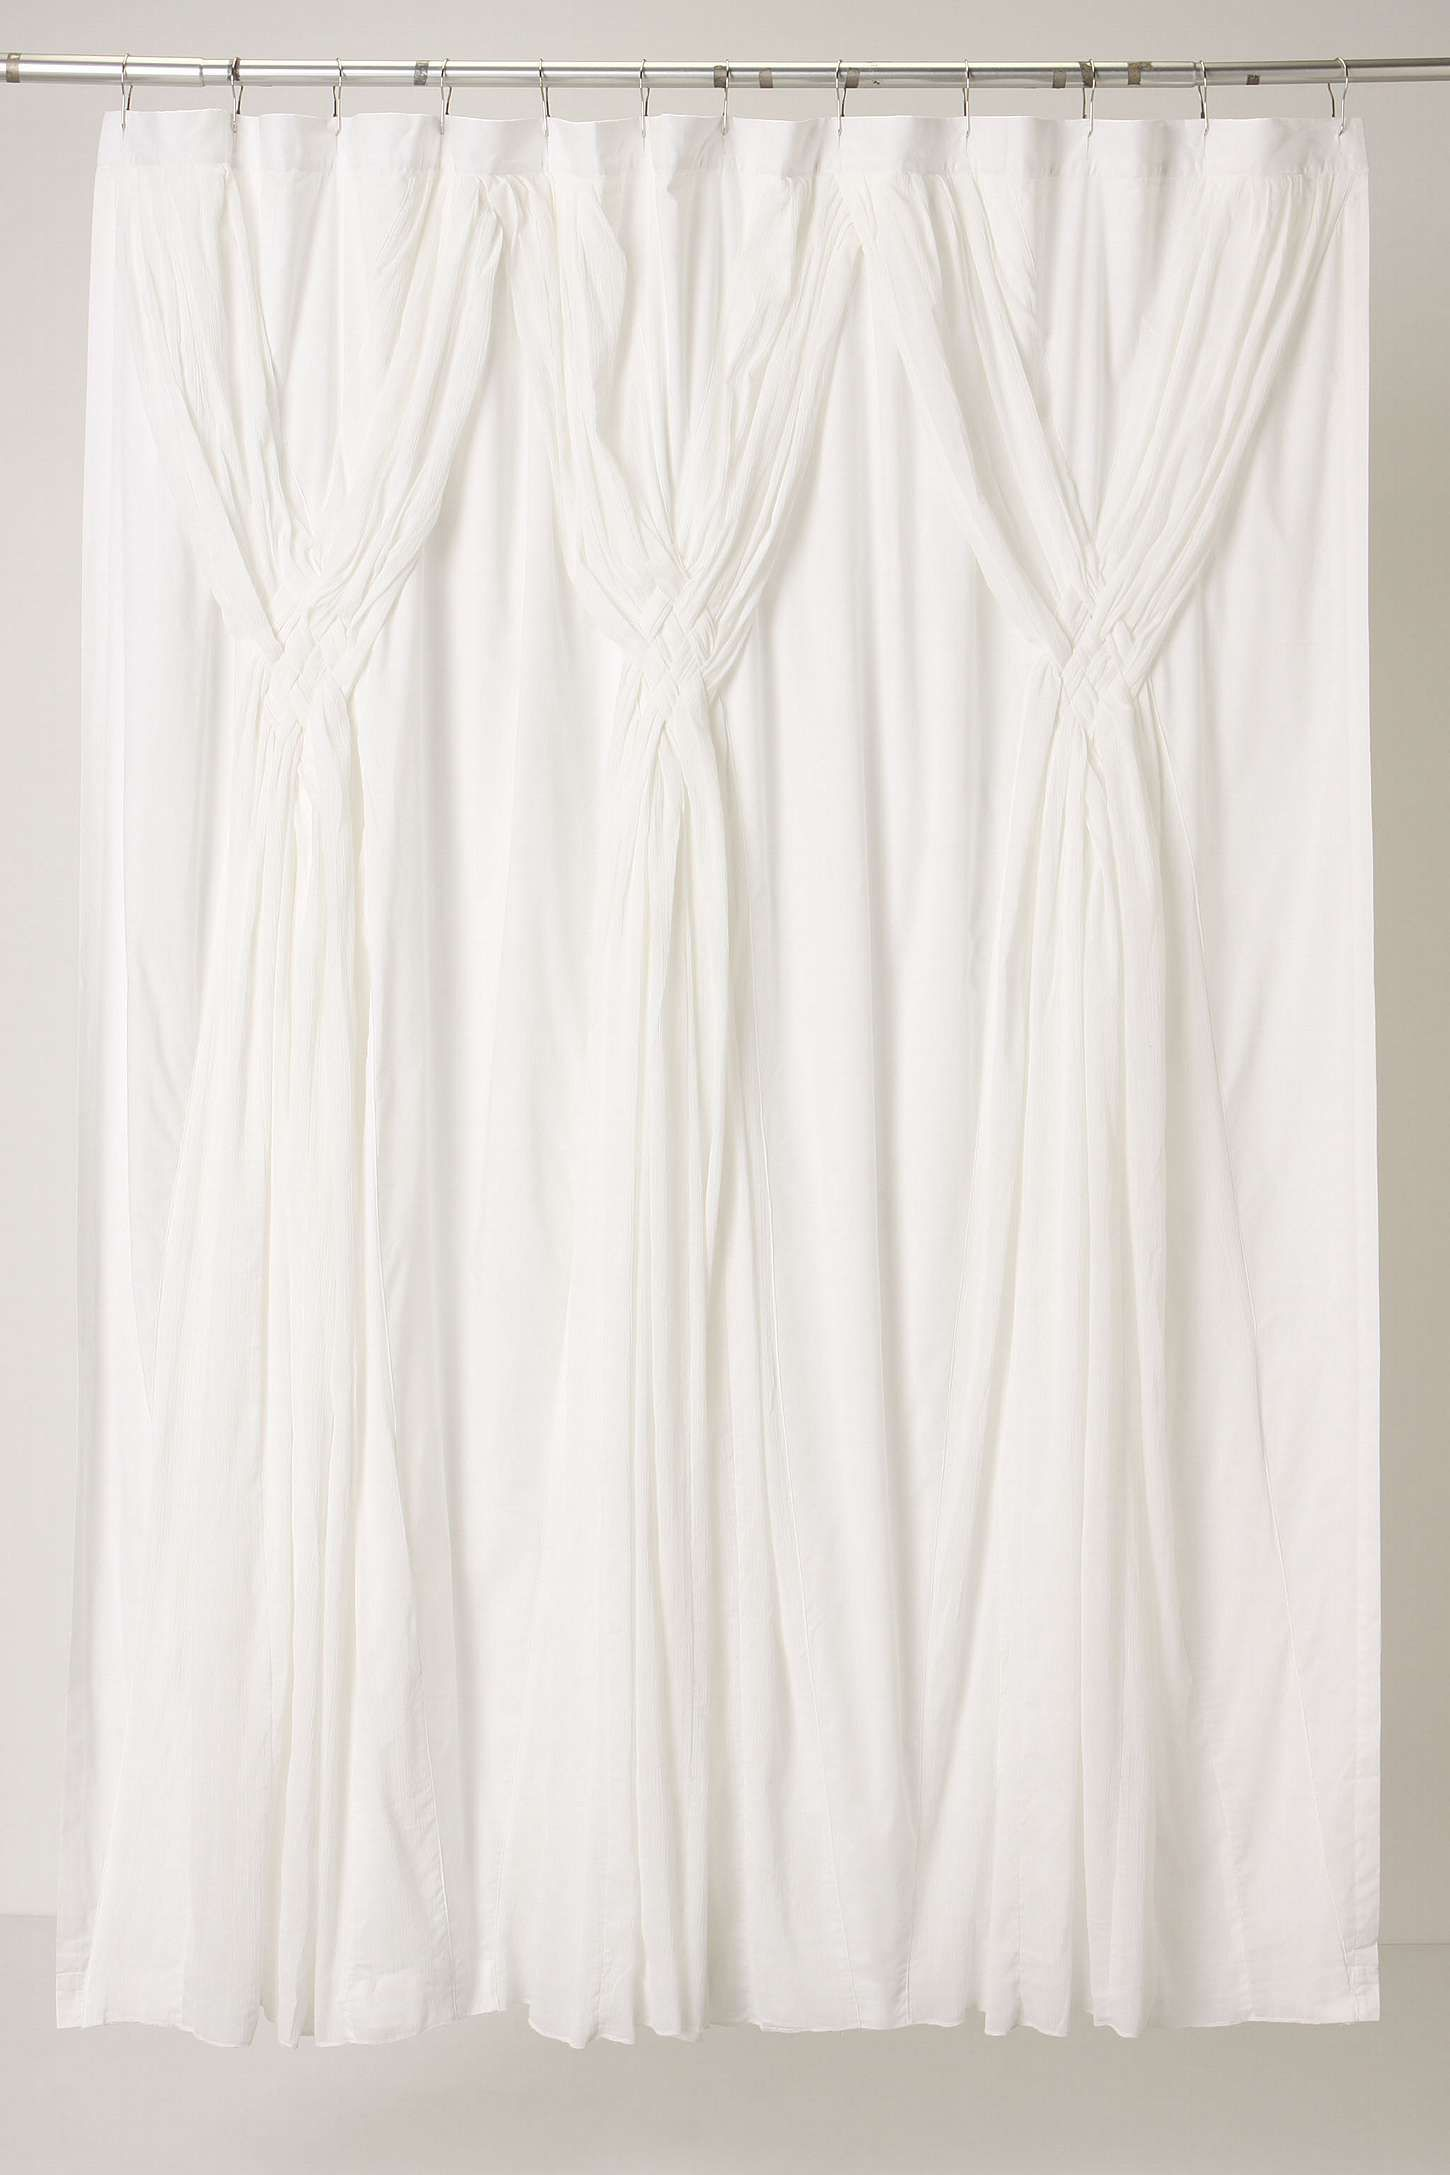 Knotted Vines Shower Curtain Elegant Shower Curtains Pretty